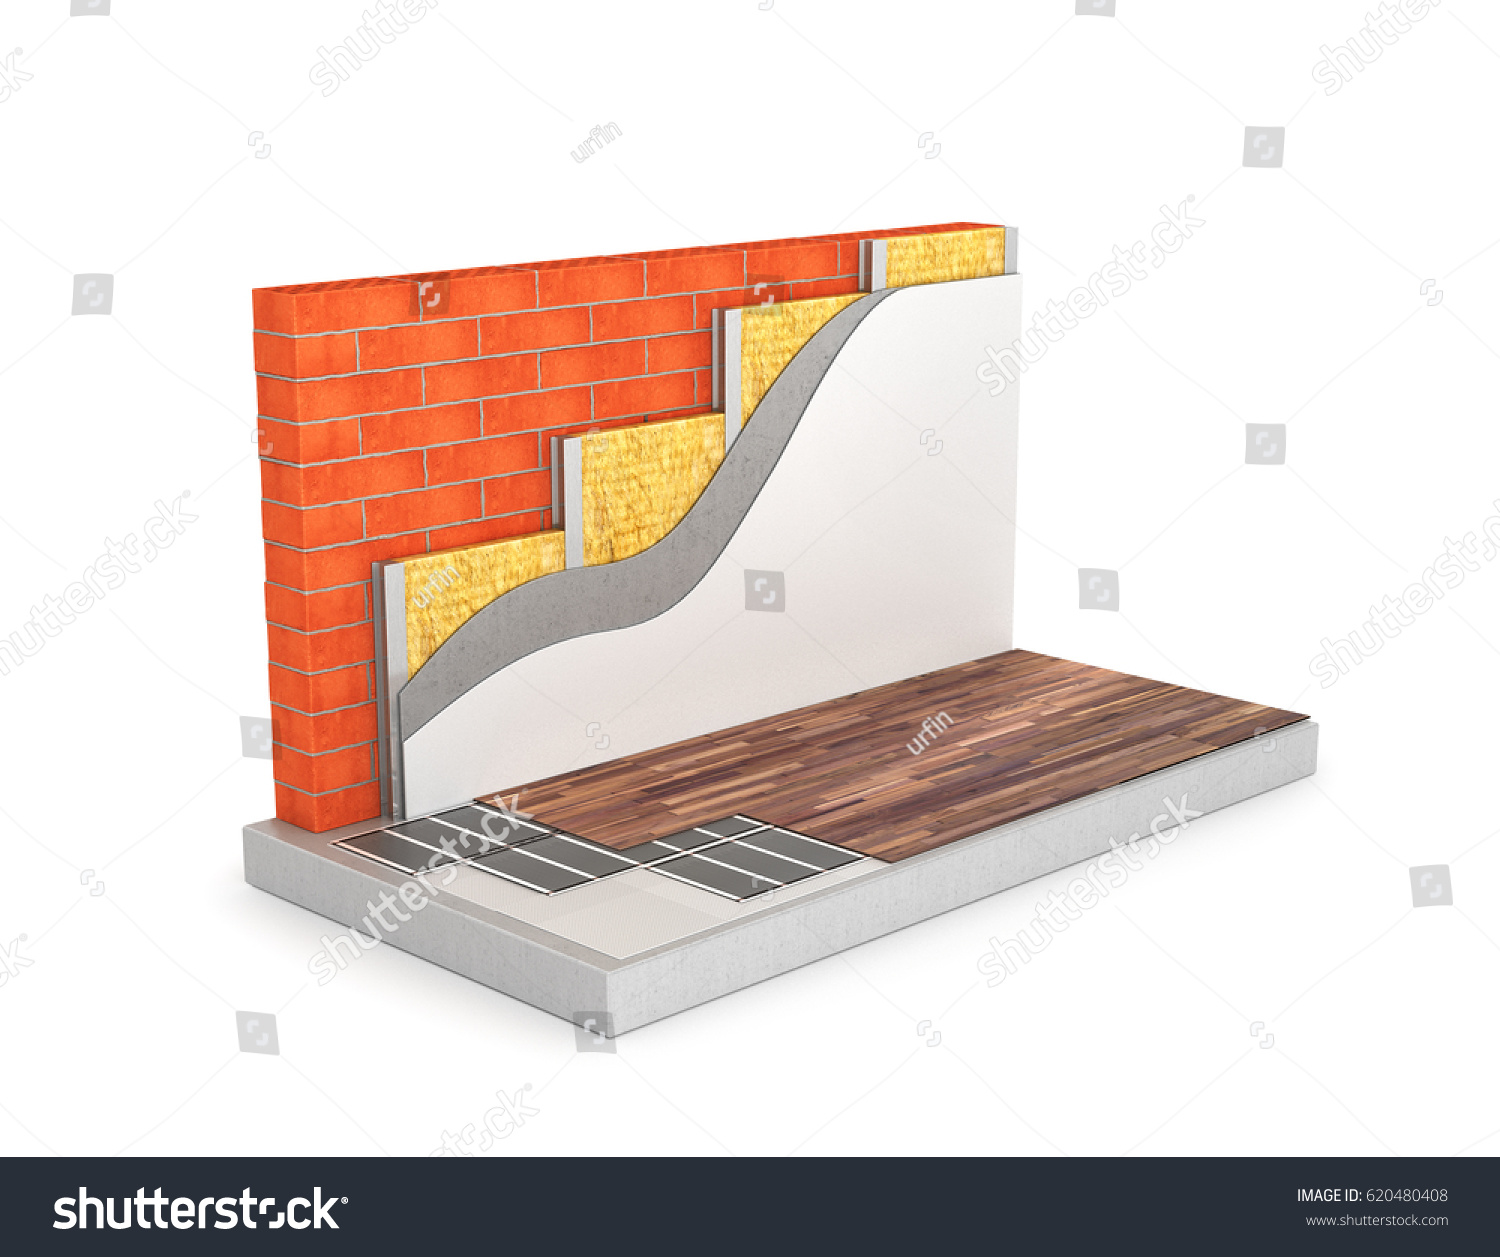 Diagram floor heating circuit wall insulation stock illustration diagram of floor heating the circuit wall insulation 3d illustration ccuart Image collections